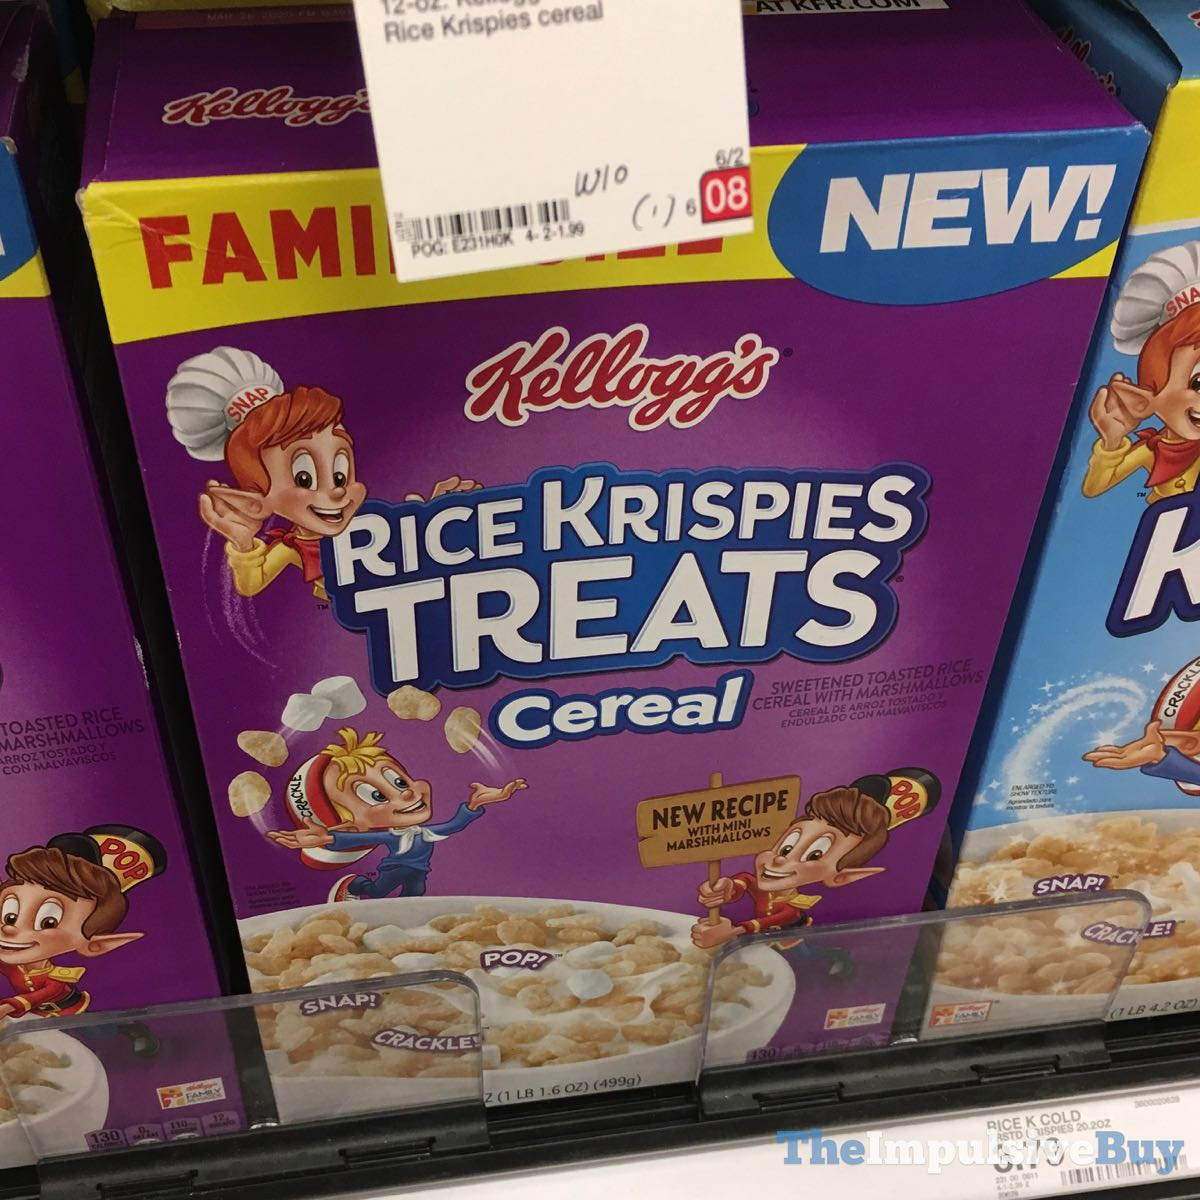 SPOTTED: Kellogg's Rice Krispies Treats Cereal (2019 New